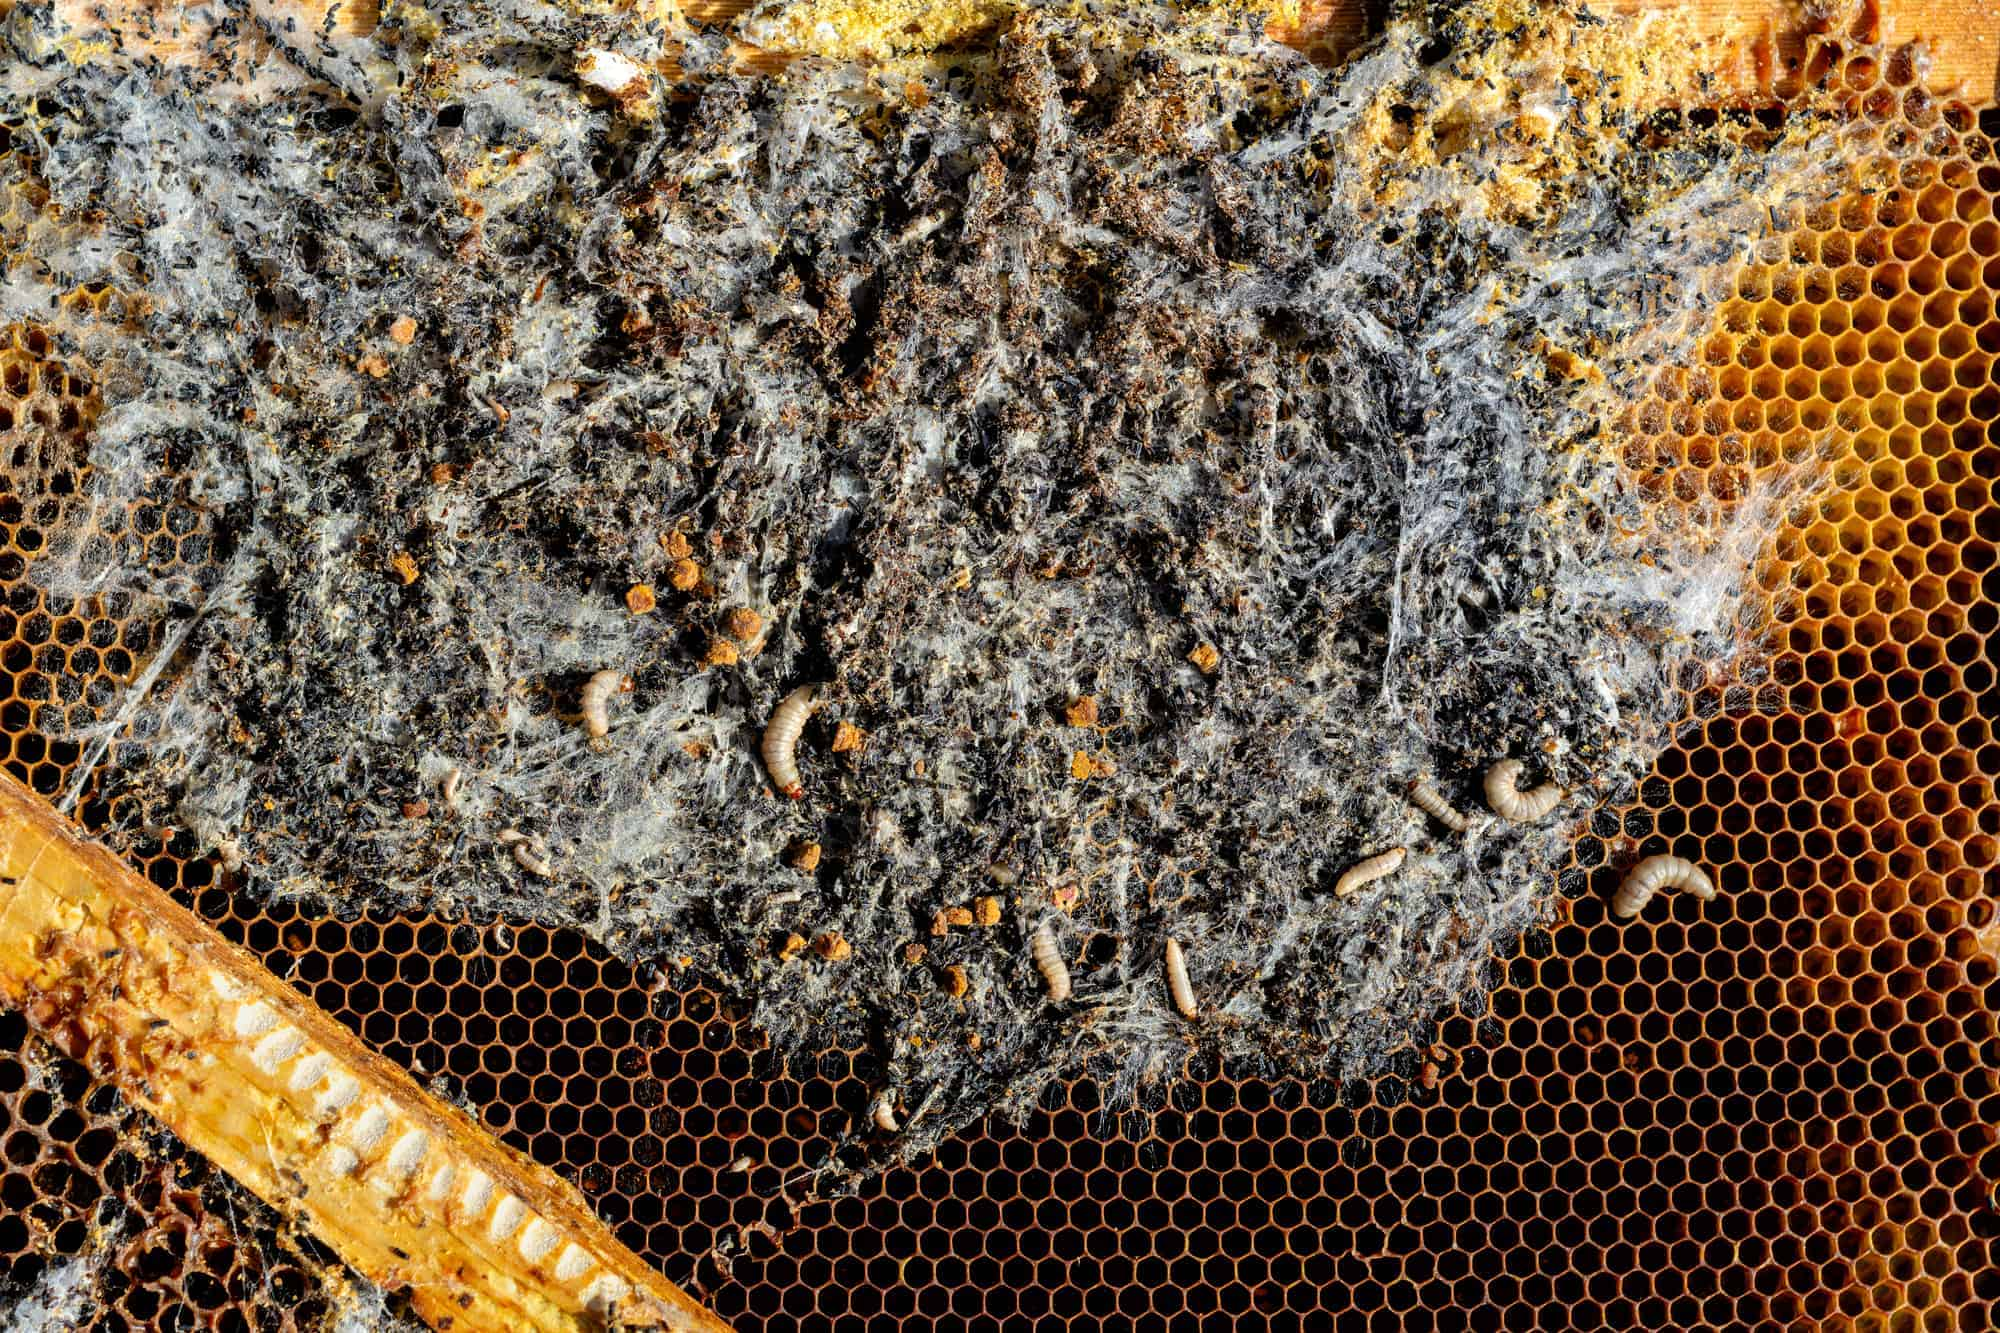 Is It Safe to Eat Honey That Has Wax Moths?